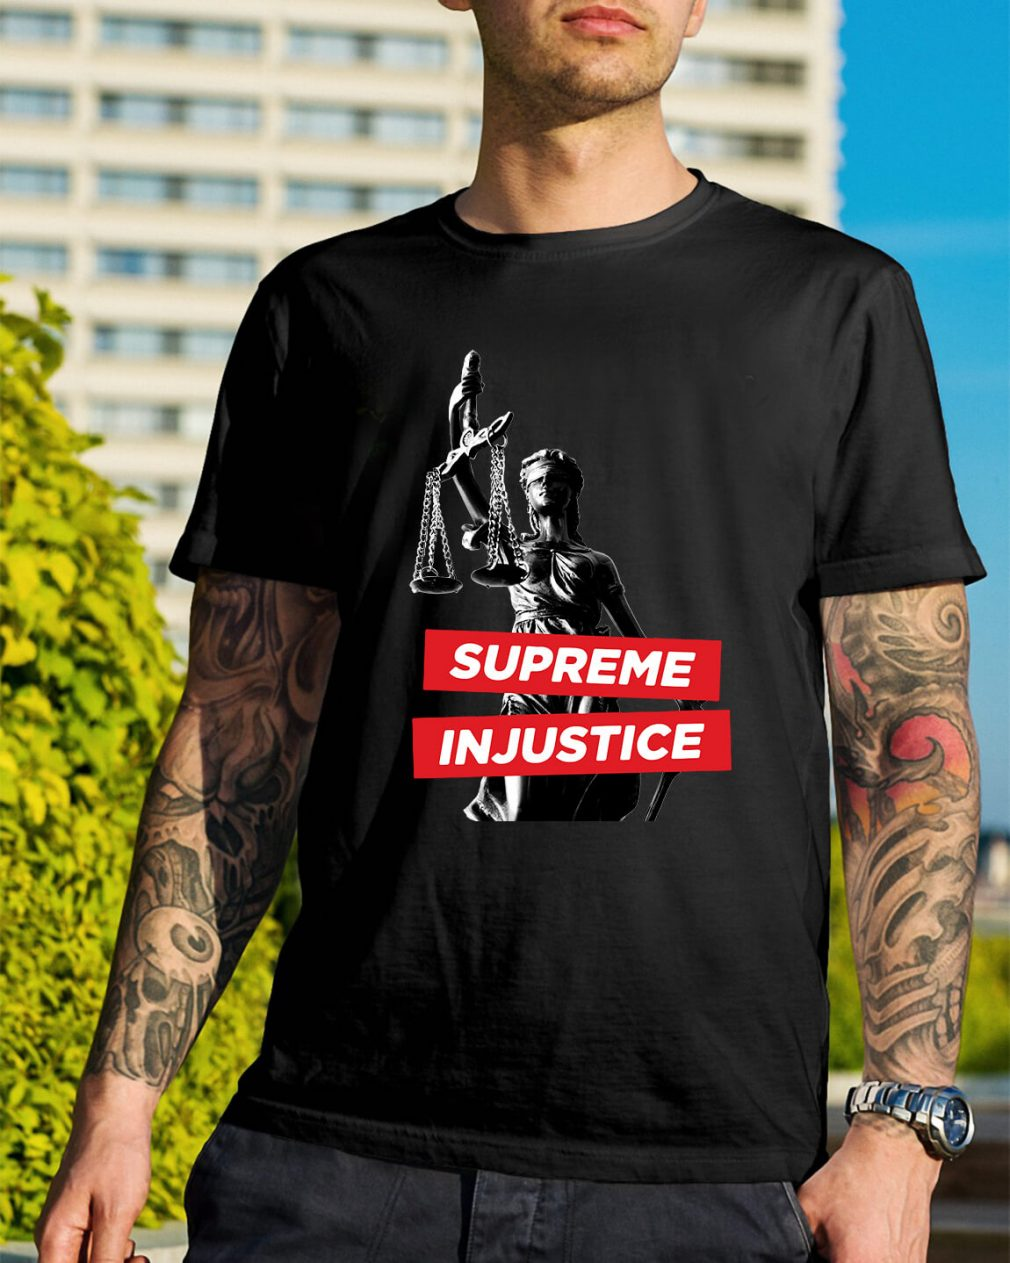 Supreme Injustice shirt